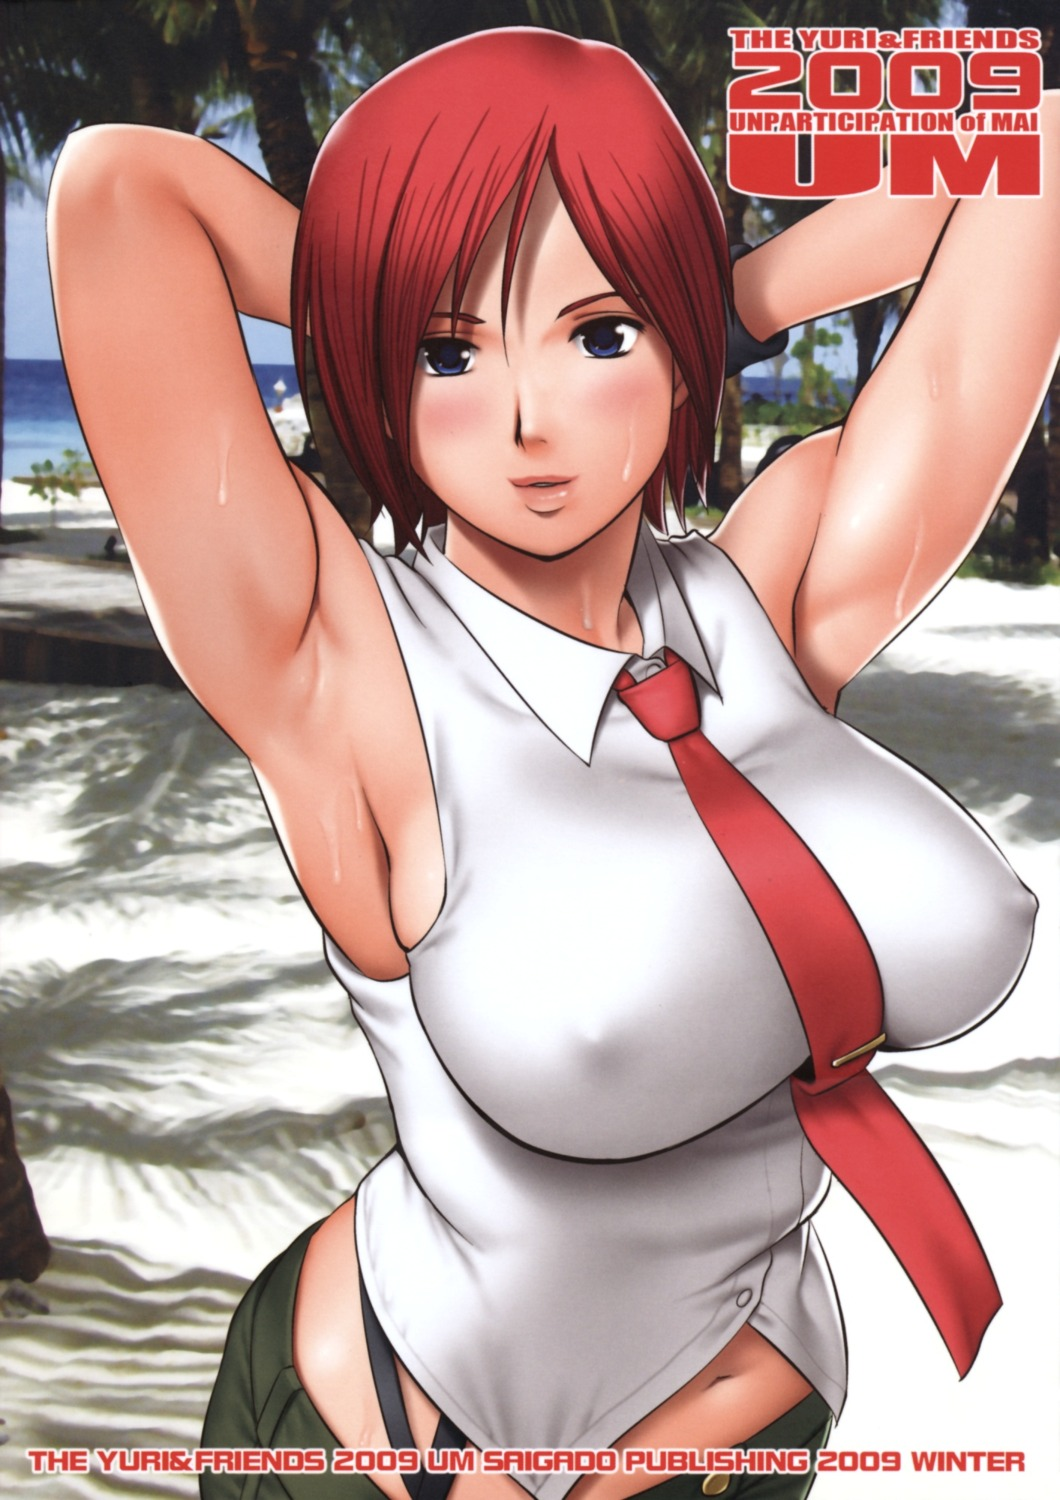 erect_nipples king_of_fighters saigado vanessa